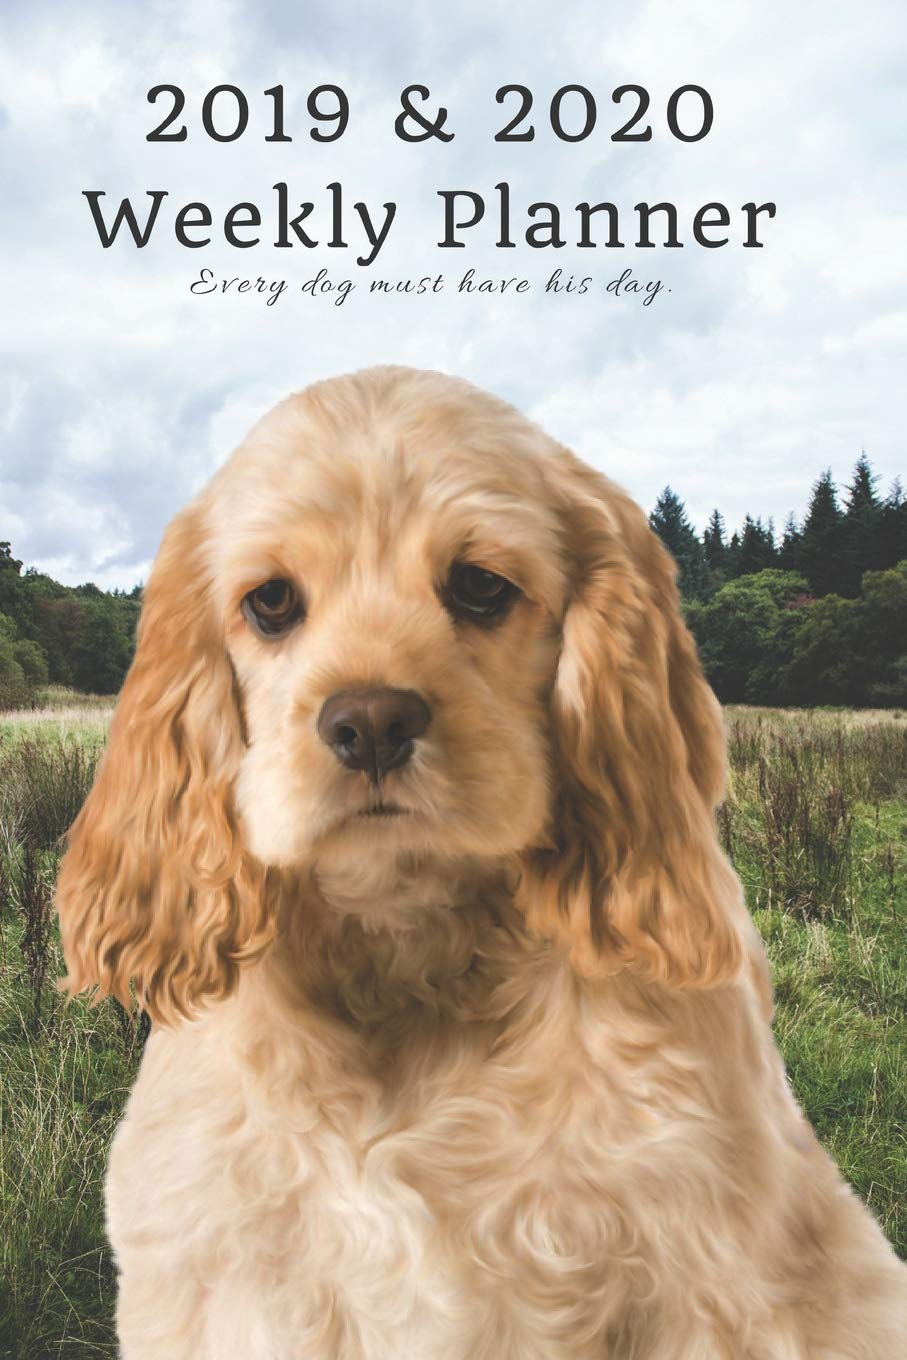 2019 & 2020 Weekly Planner Every dog must have his day.: Cute Cocker Spaniel in Nature: Two Year Agenda Datebook: Plan Goals to Gain & Work to Maintain Daily & Monthly (6 x 9 in; 105 pages)